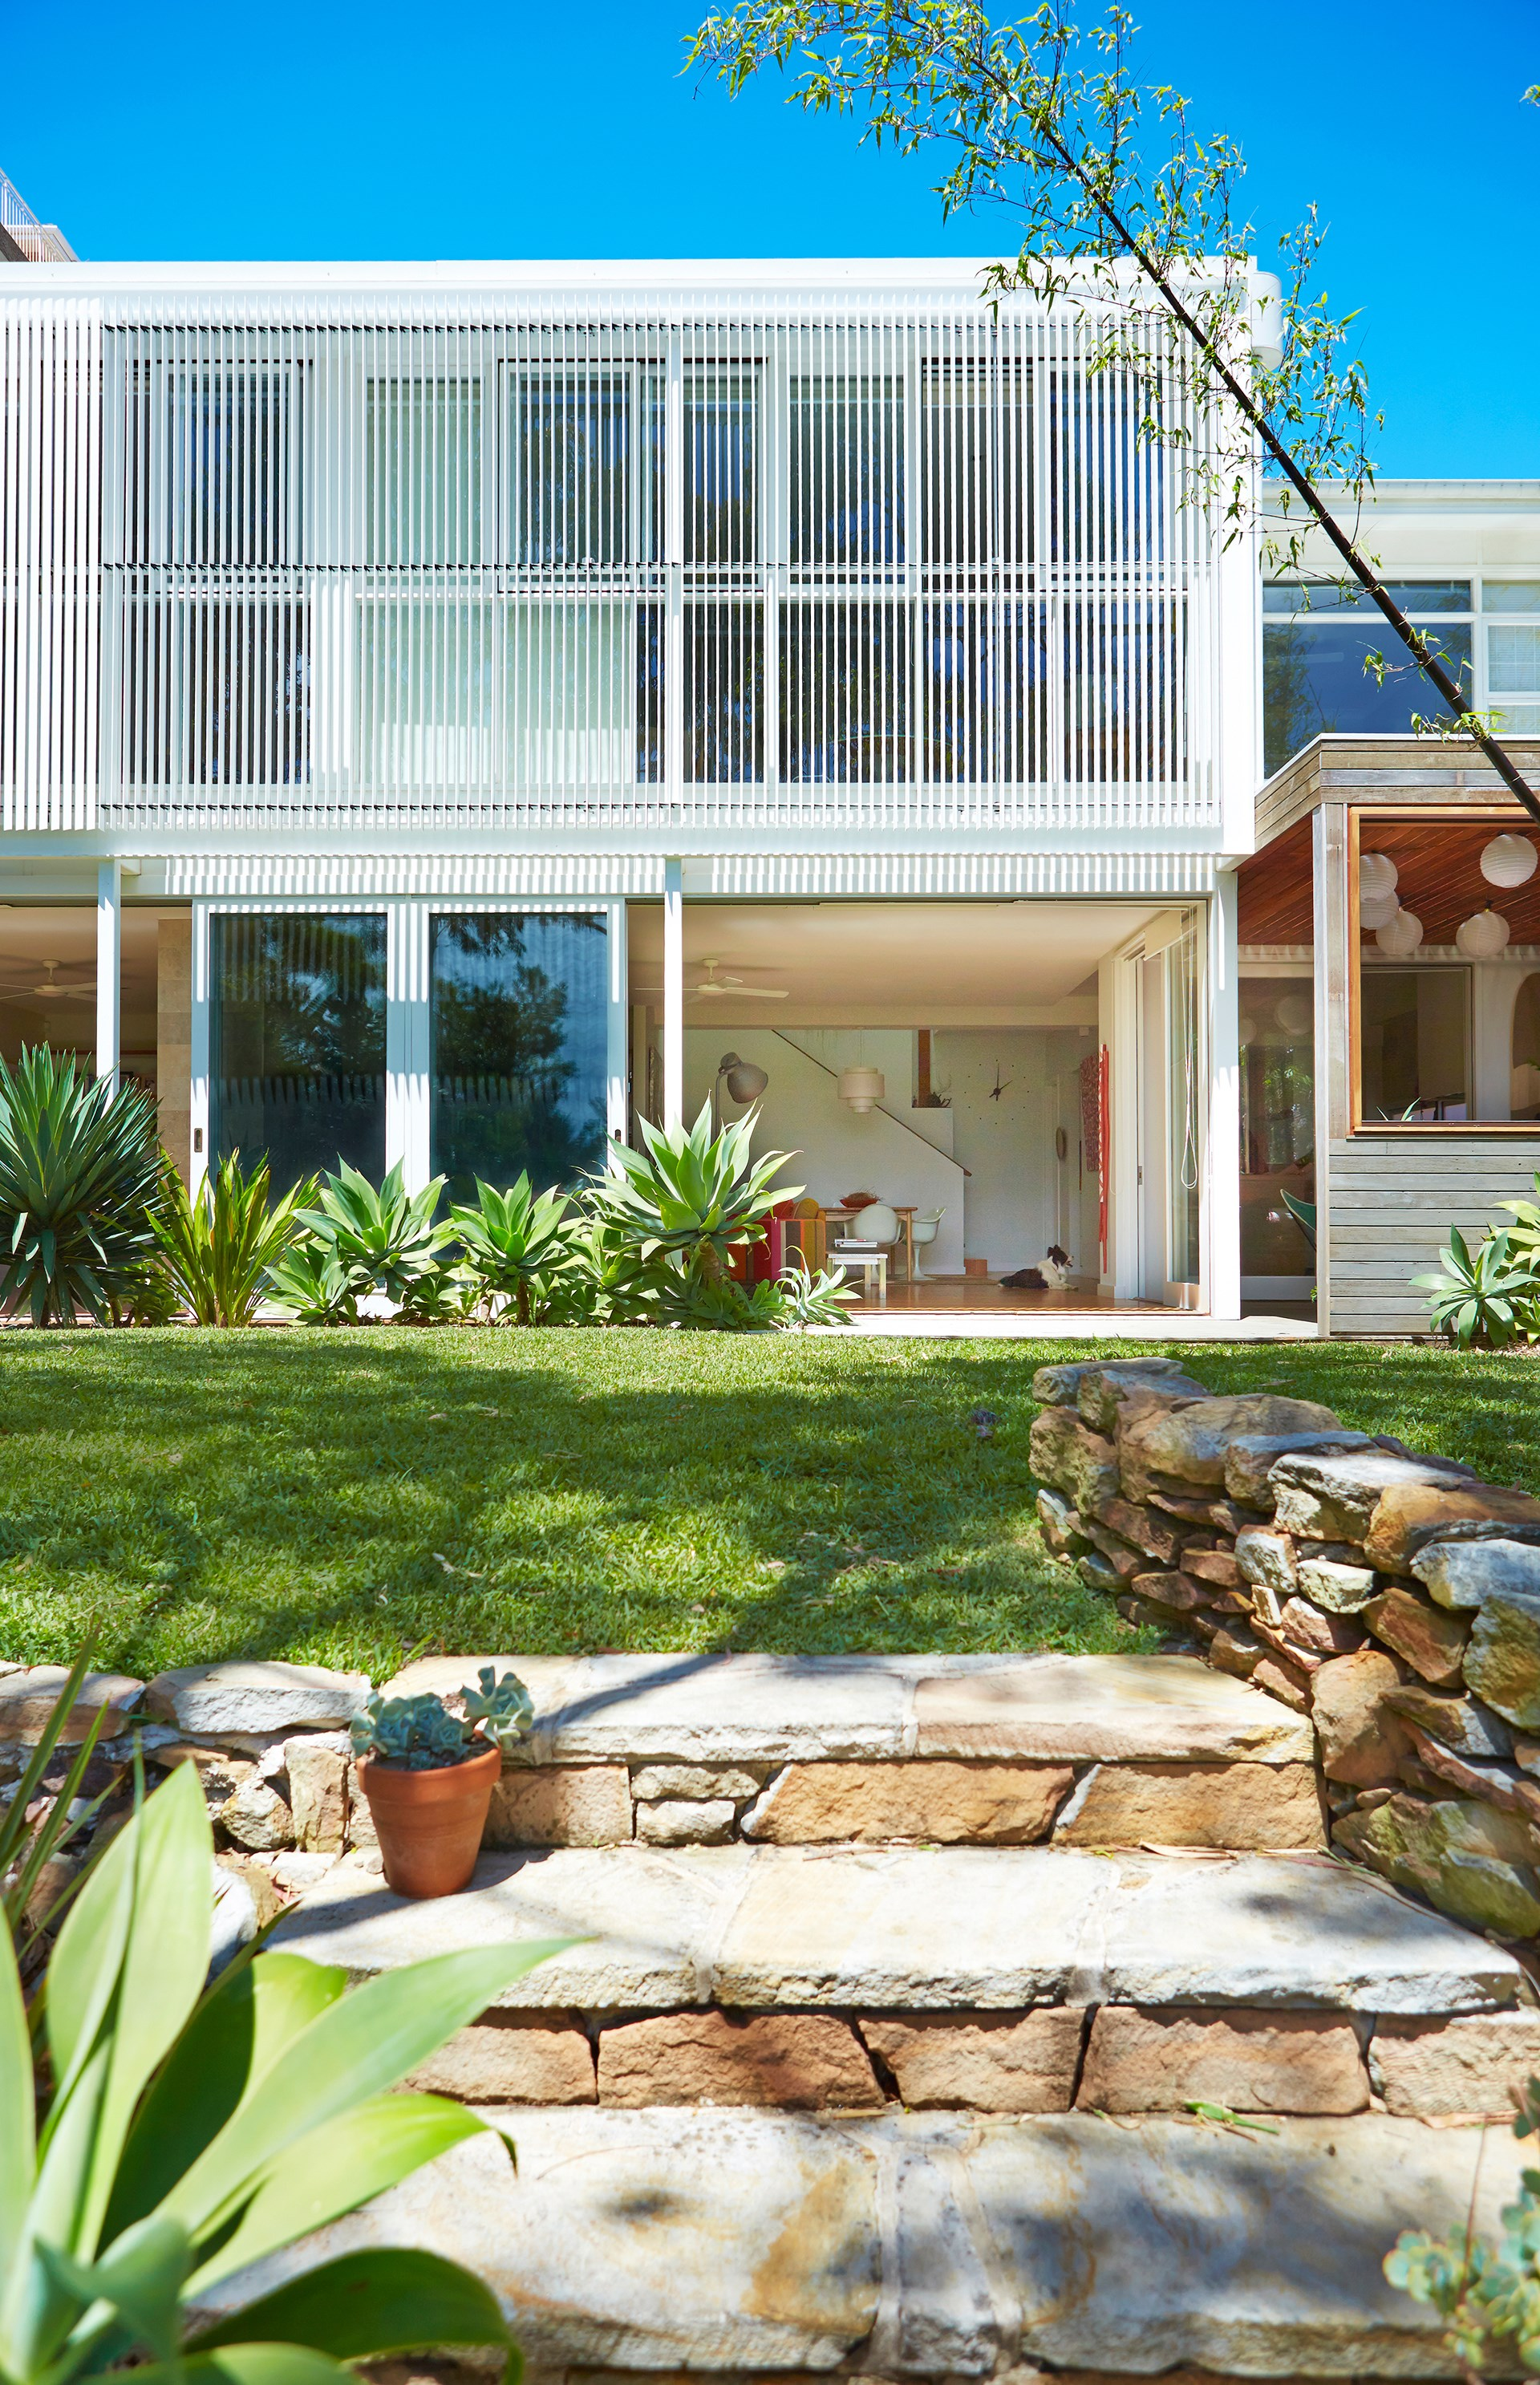 Find out more about this [retro-inspired family home](http://www.homestolove.com.au/gallery-retro-inspired-bondi-beach-house-1636). Photo: John Paul Urizar / *Australian House & Garden*